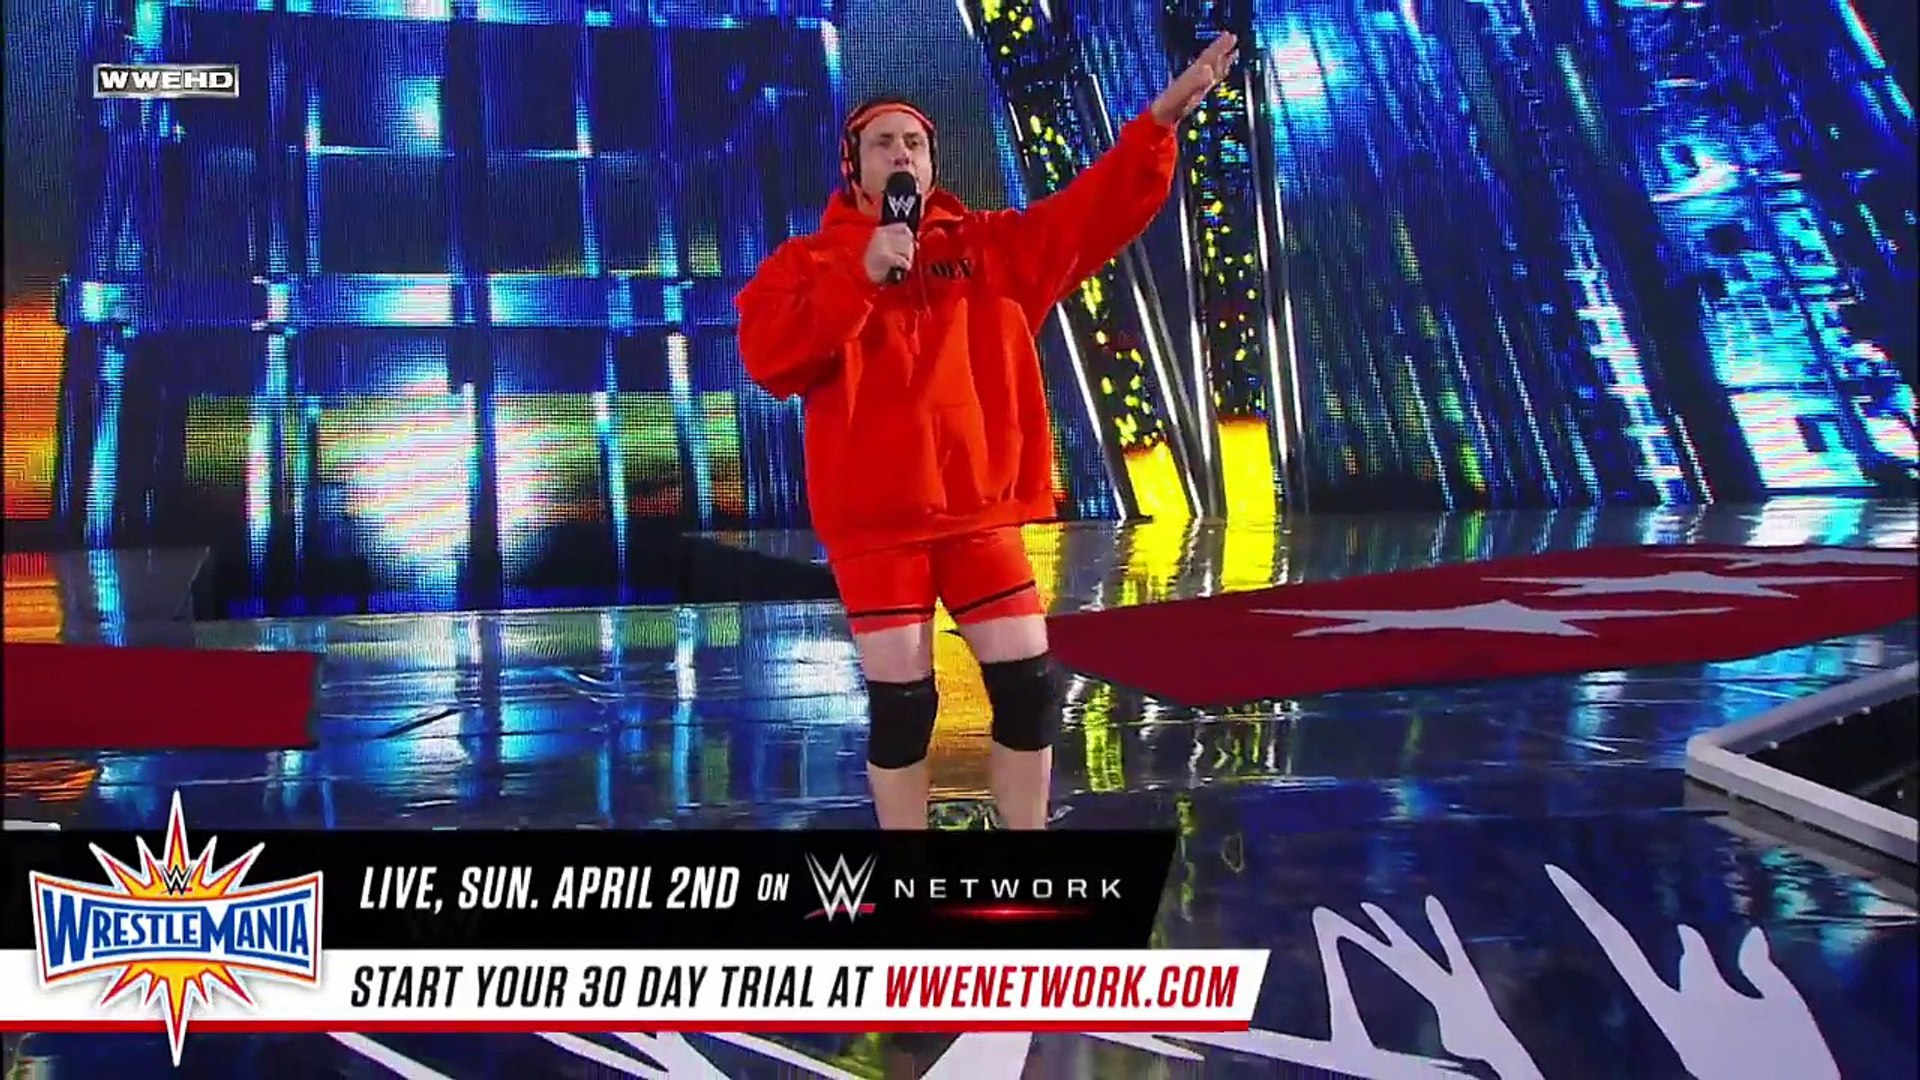 Revealed: The Worst WWE WrestleMania Match That Vince McMahon Has Ever Seen 1